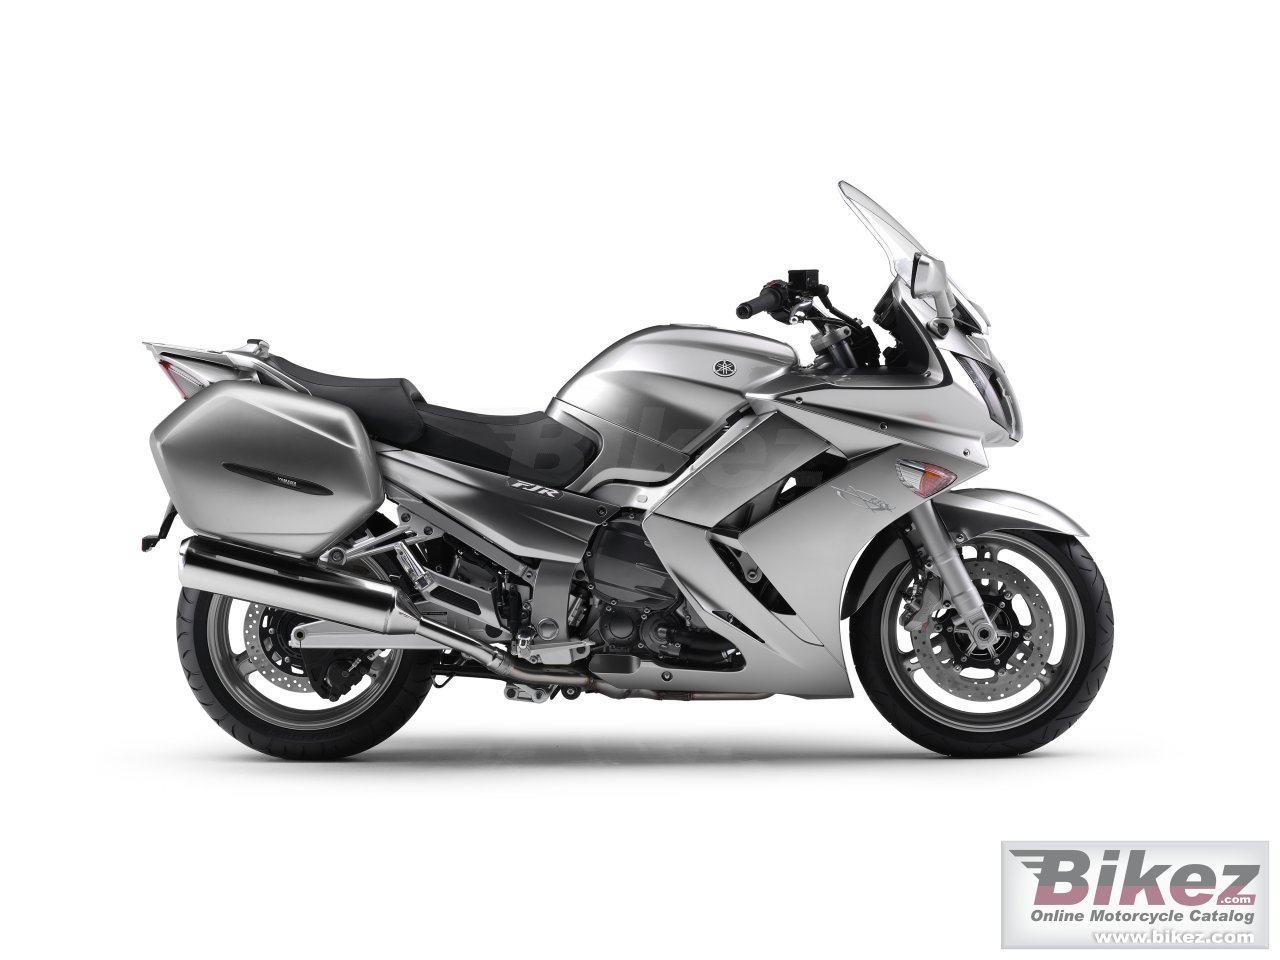 Big Yamaha fjr1300as picture and wallpaper from Bikez.com